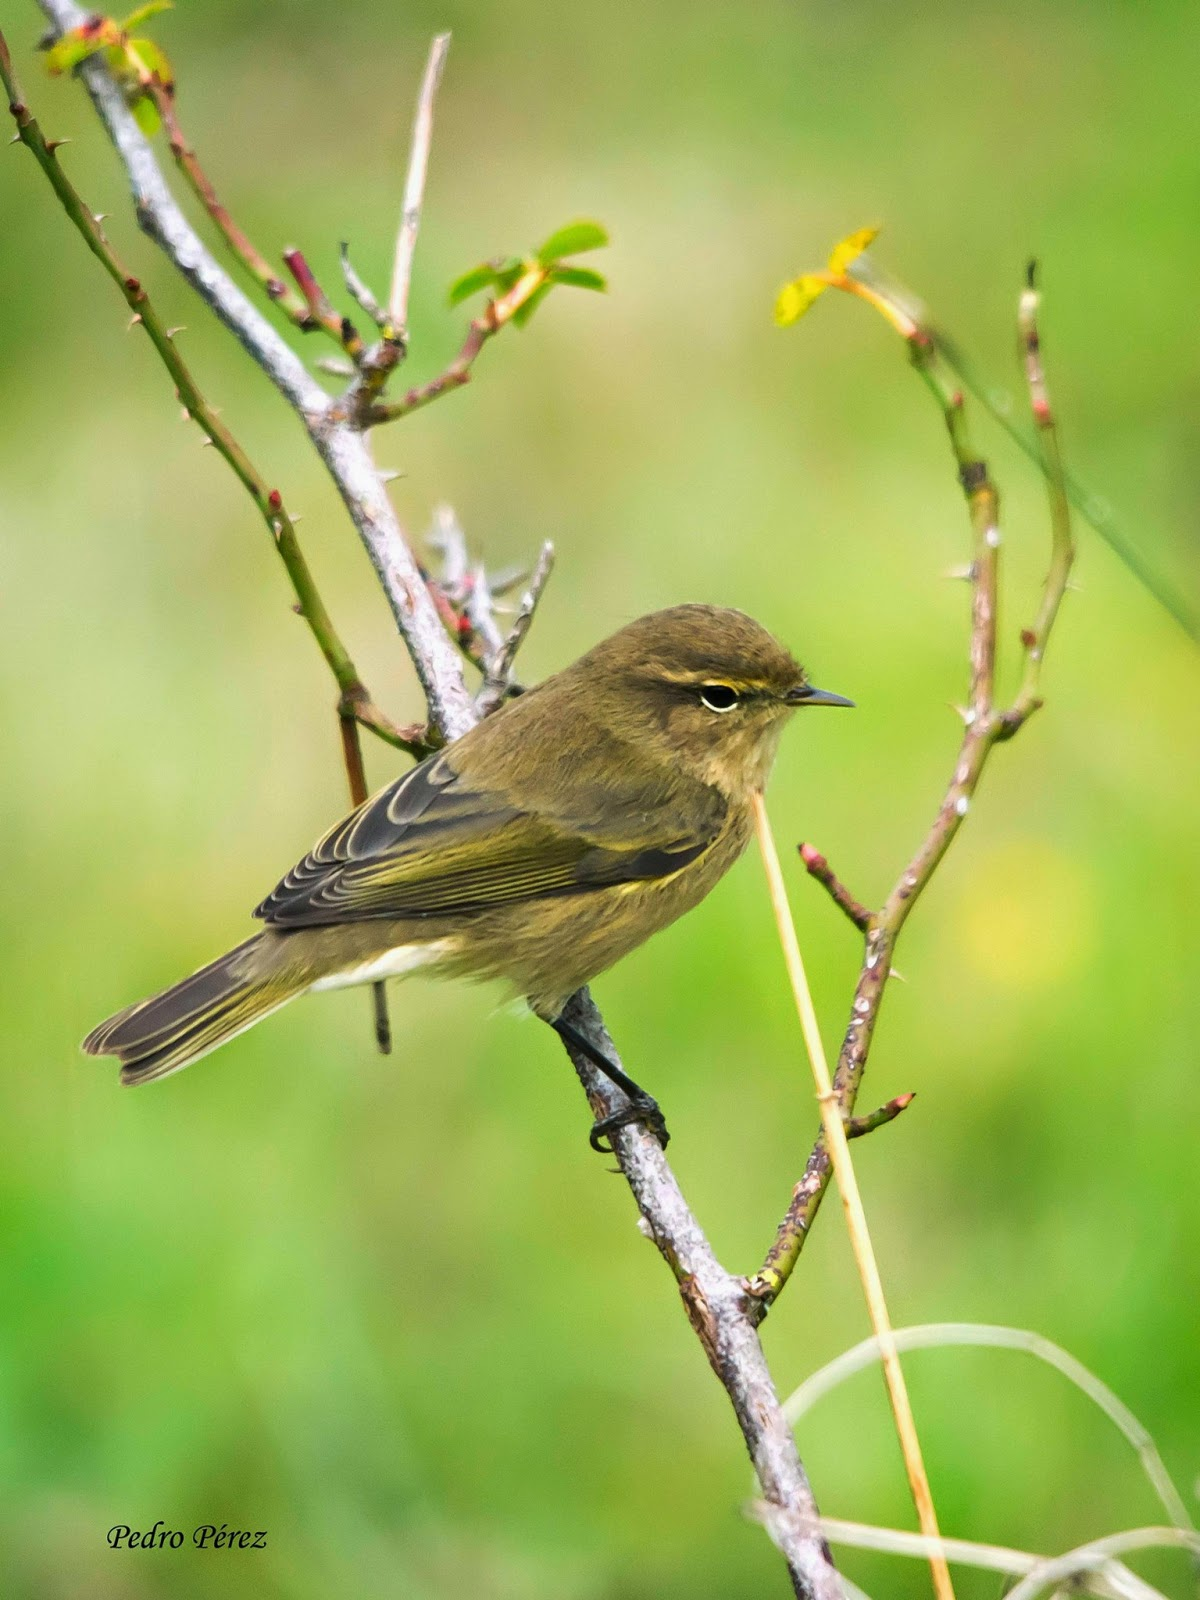 http://www.seo.org/ave/mosquitero-comun/